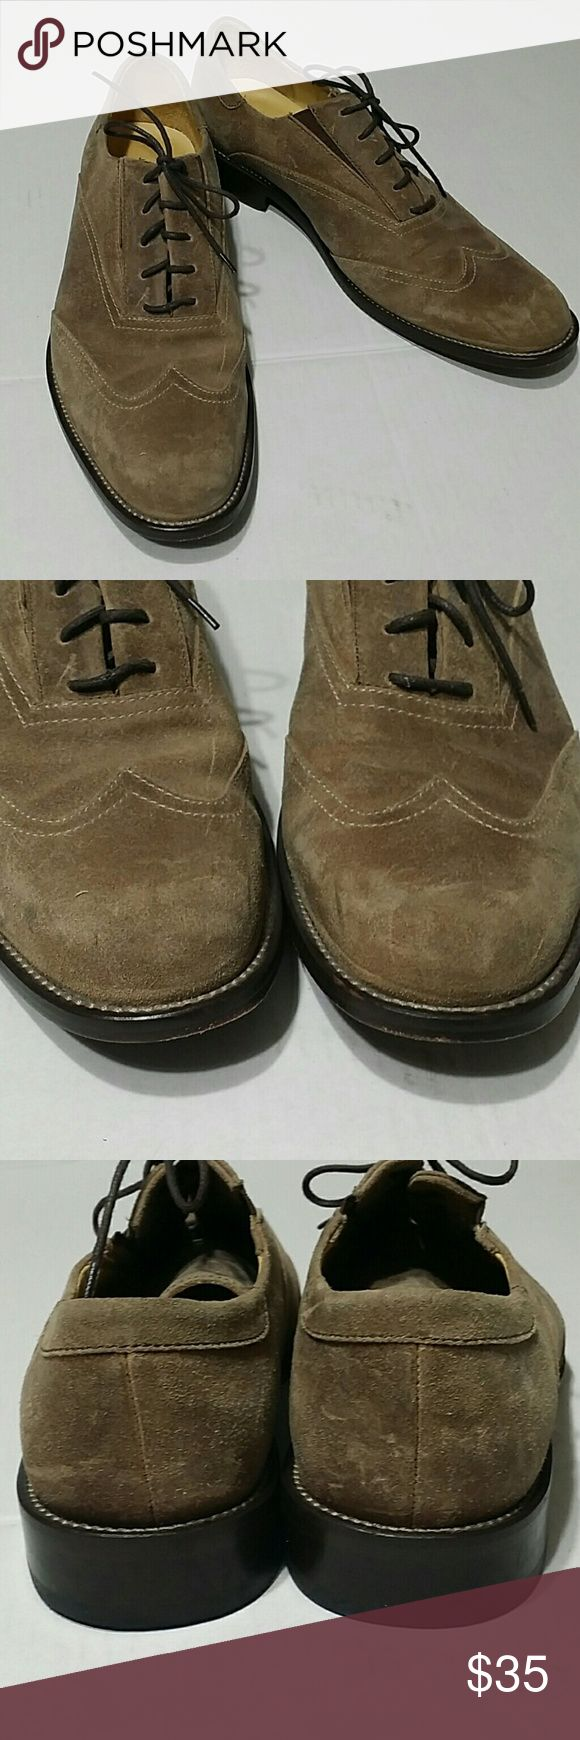 Joseph Abboud shoes Light tan suade laced shoes in size 9M, elastic alongside laces for a better fit.  Very good used condition. Joseph Abboud Shoes